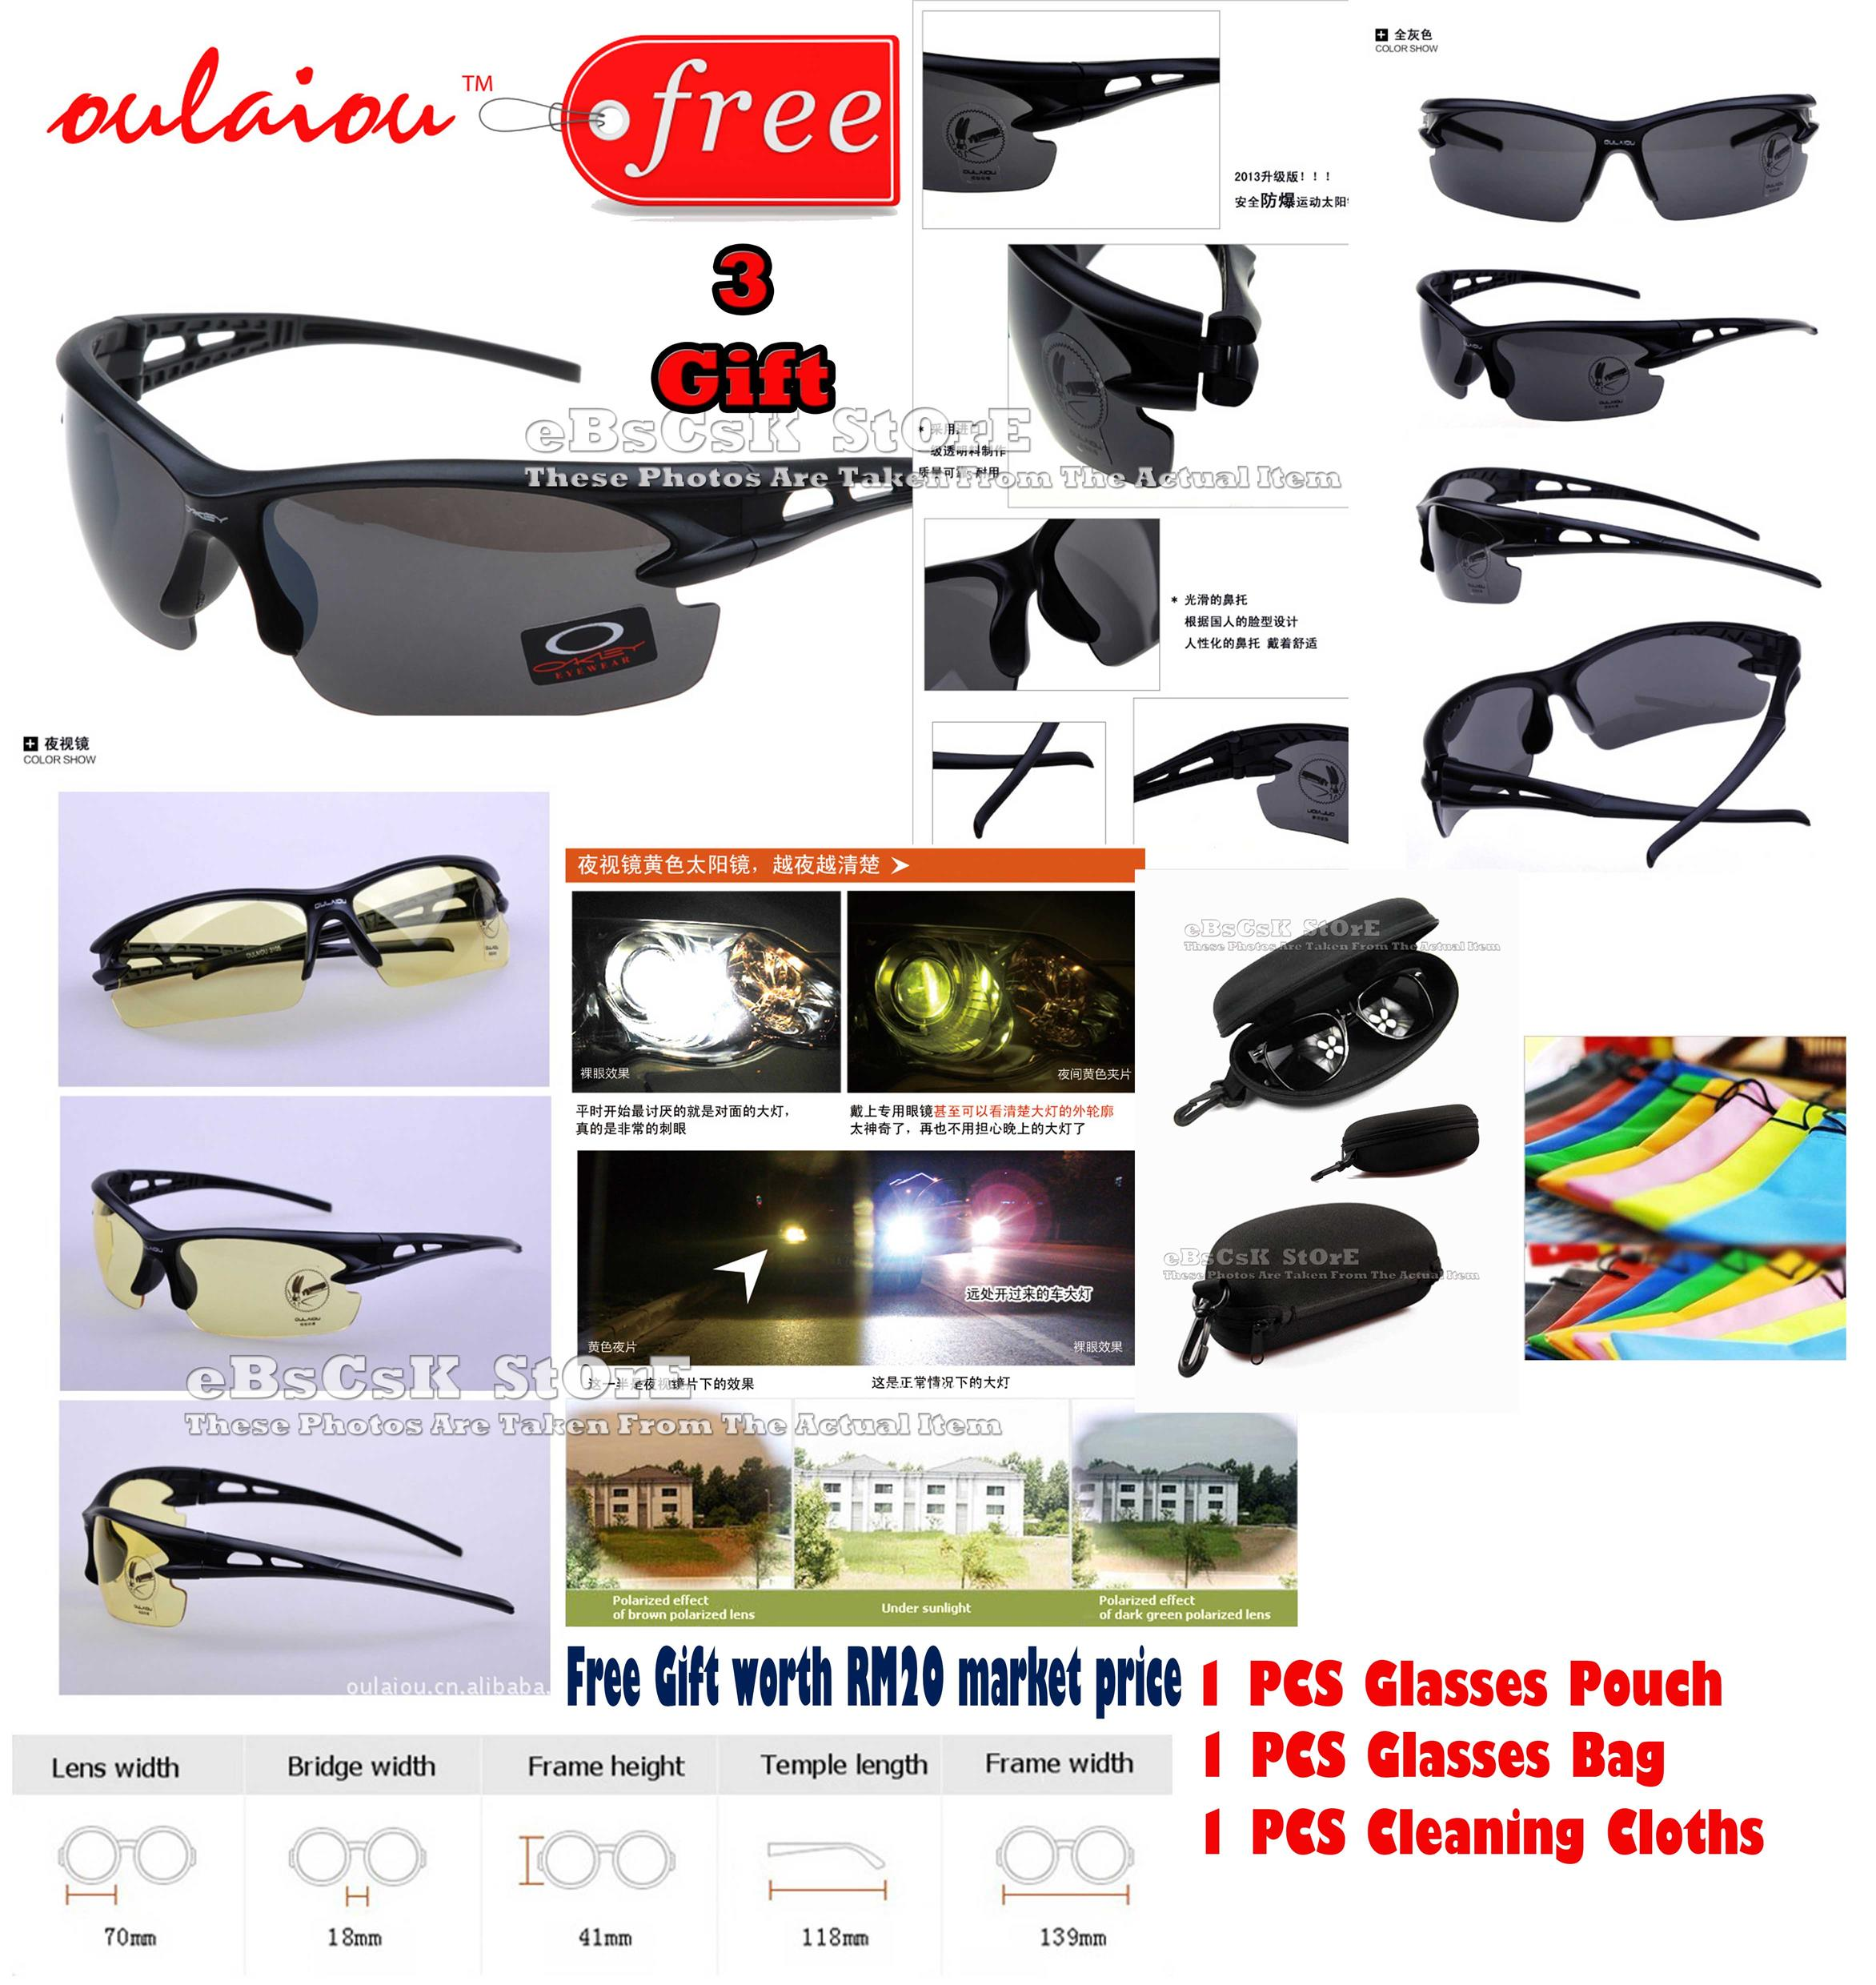 2 Unit HD Vision Day View + Night View Sports Sunglasses Glasses+3Gift